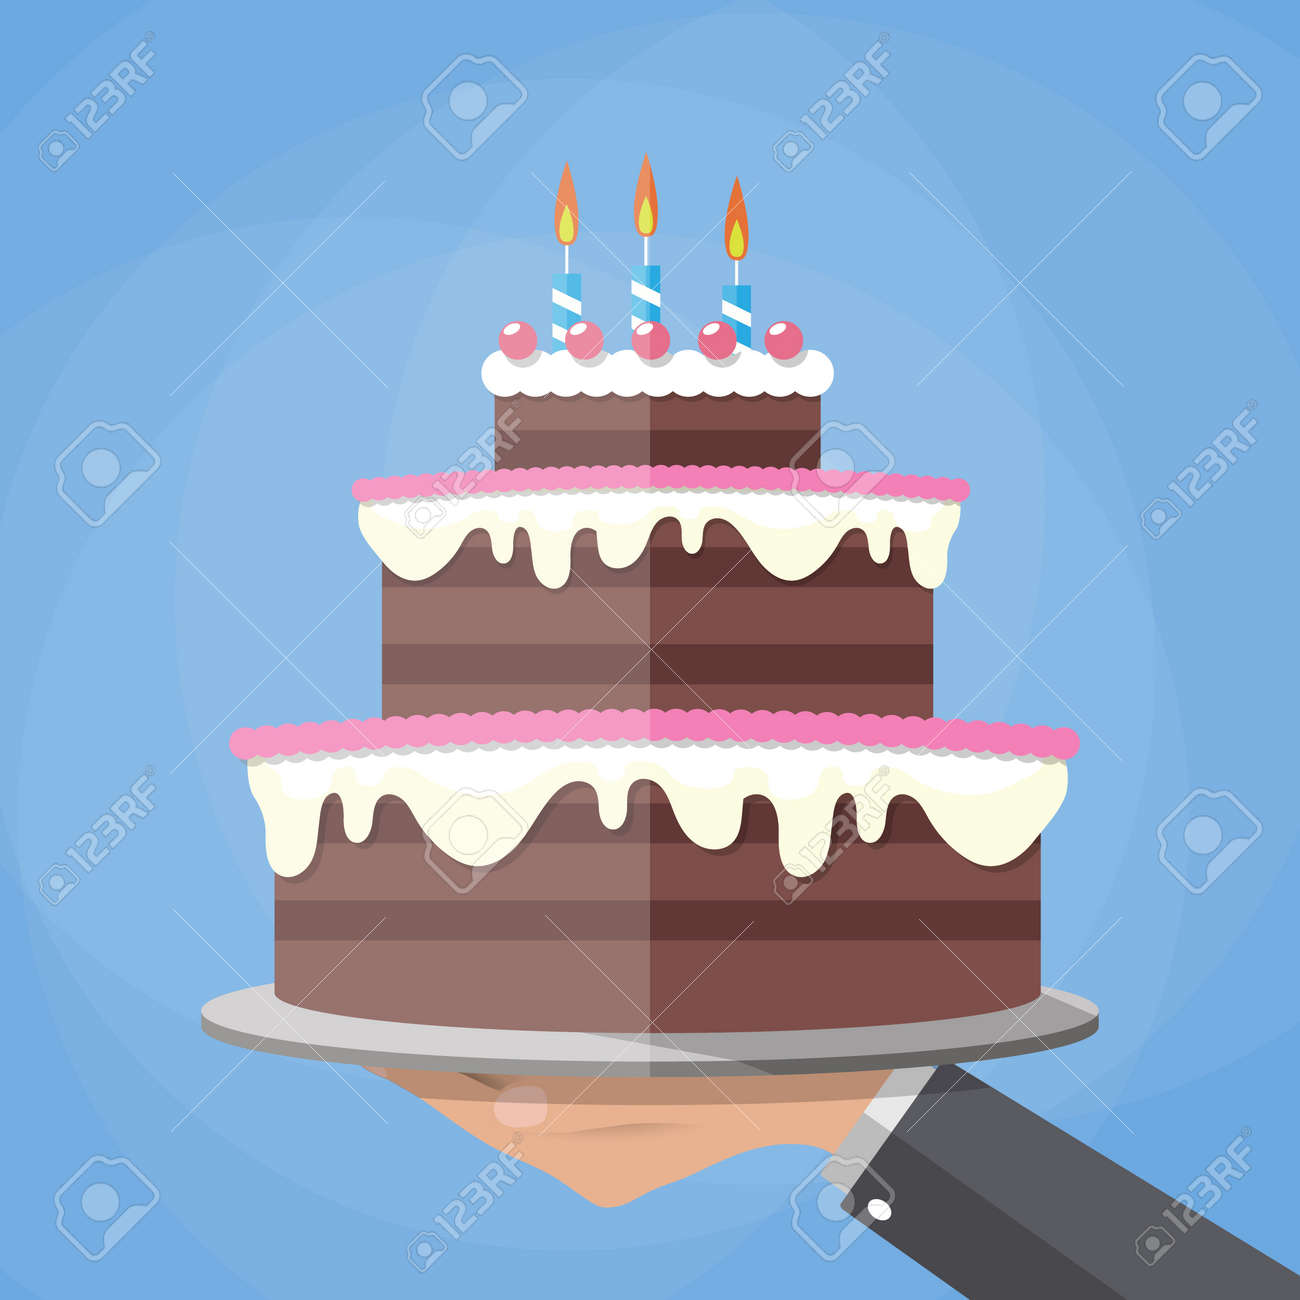 Cartoon Hands Holding Chocolate Layer Cake Decorated With Three